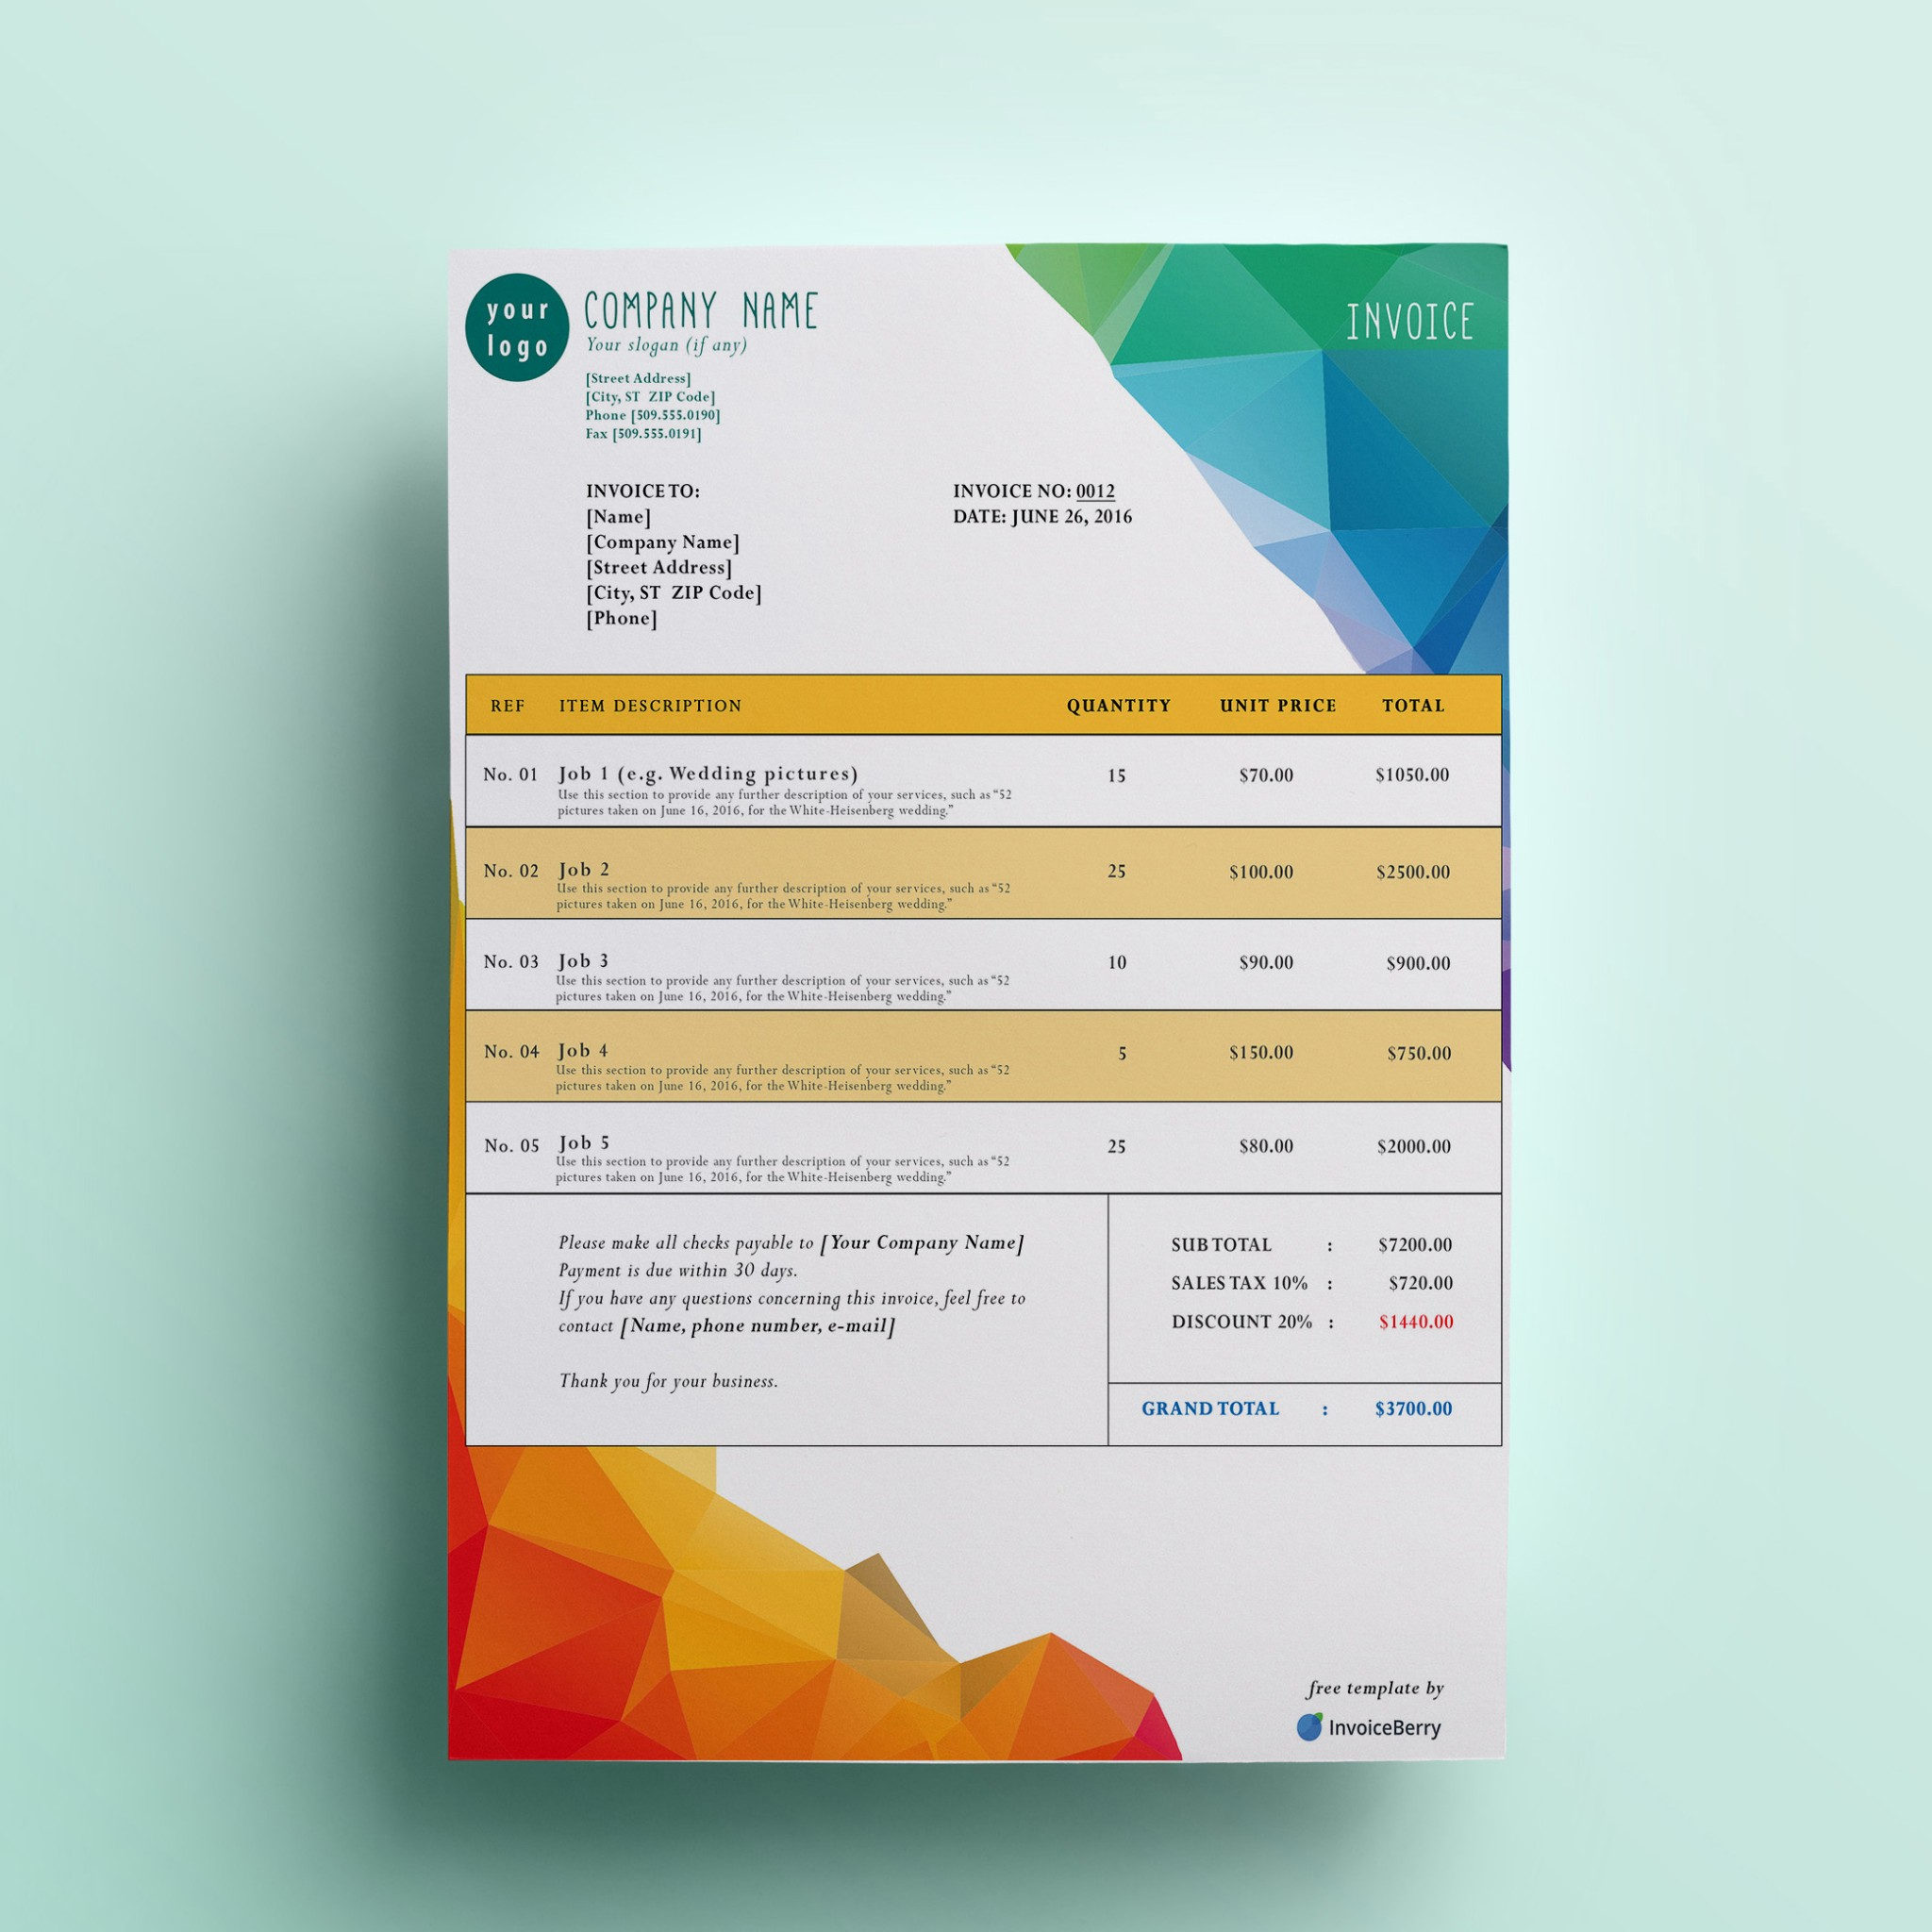 Free Invoice Templates By InvoiceBerry The Grid System - Invoice templates